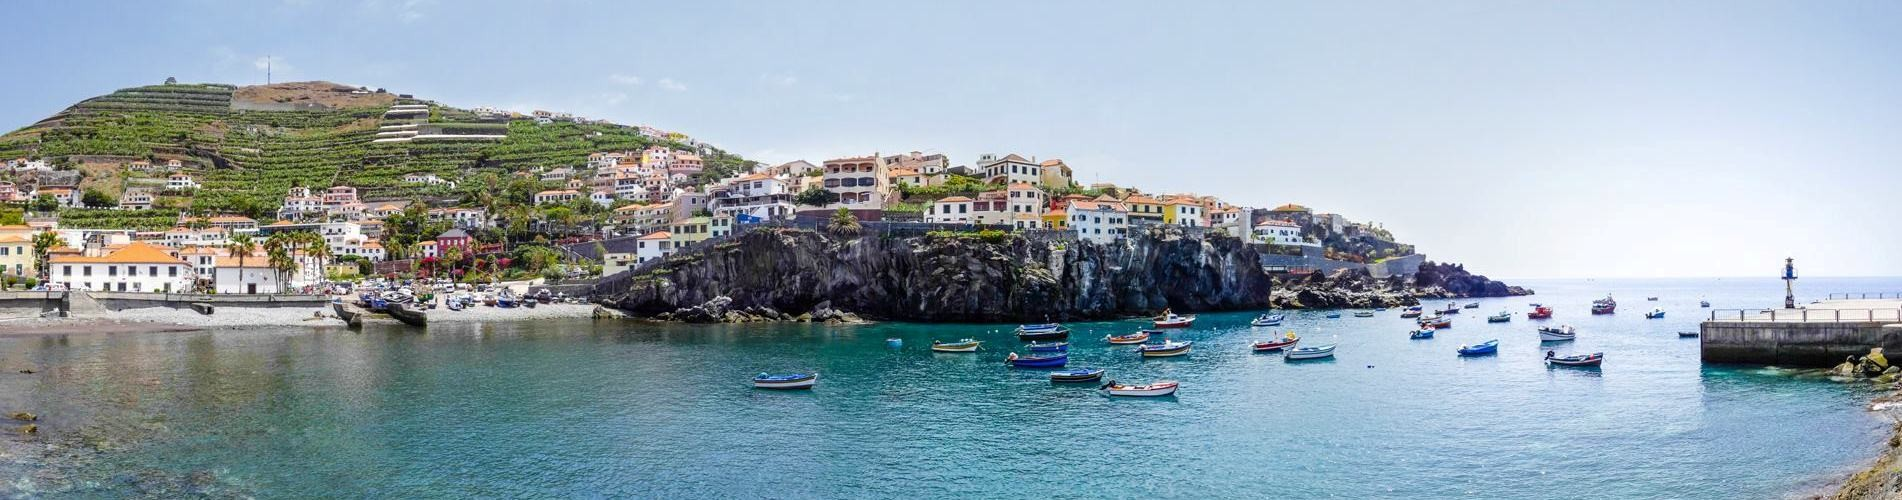 Sightseeing Tours in Madeira Island